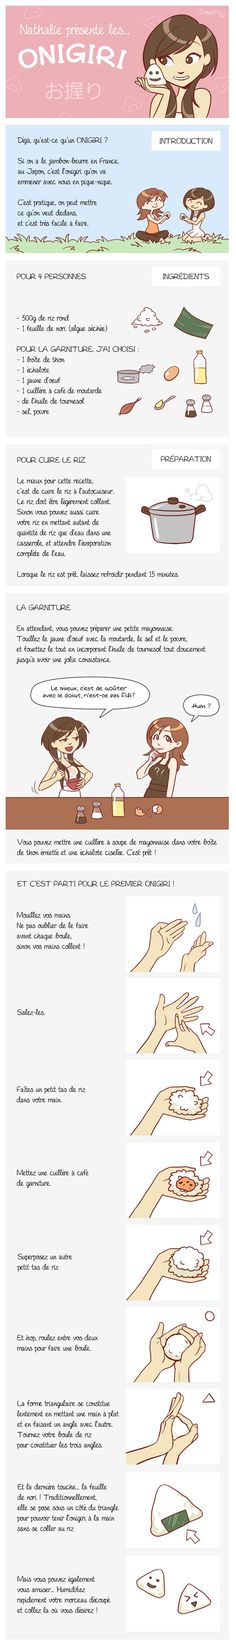 Haha all in French, but a how-to for onigiri for people who didn't grow up with a Japanese mom!